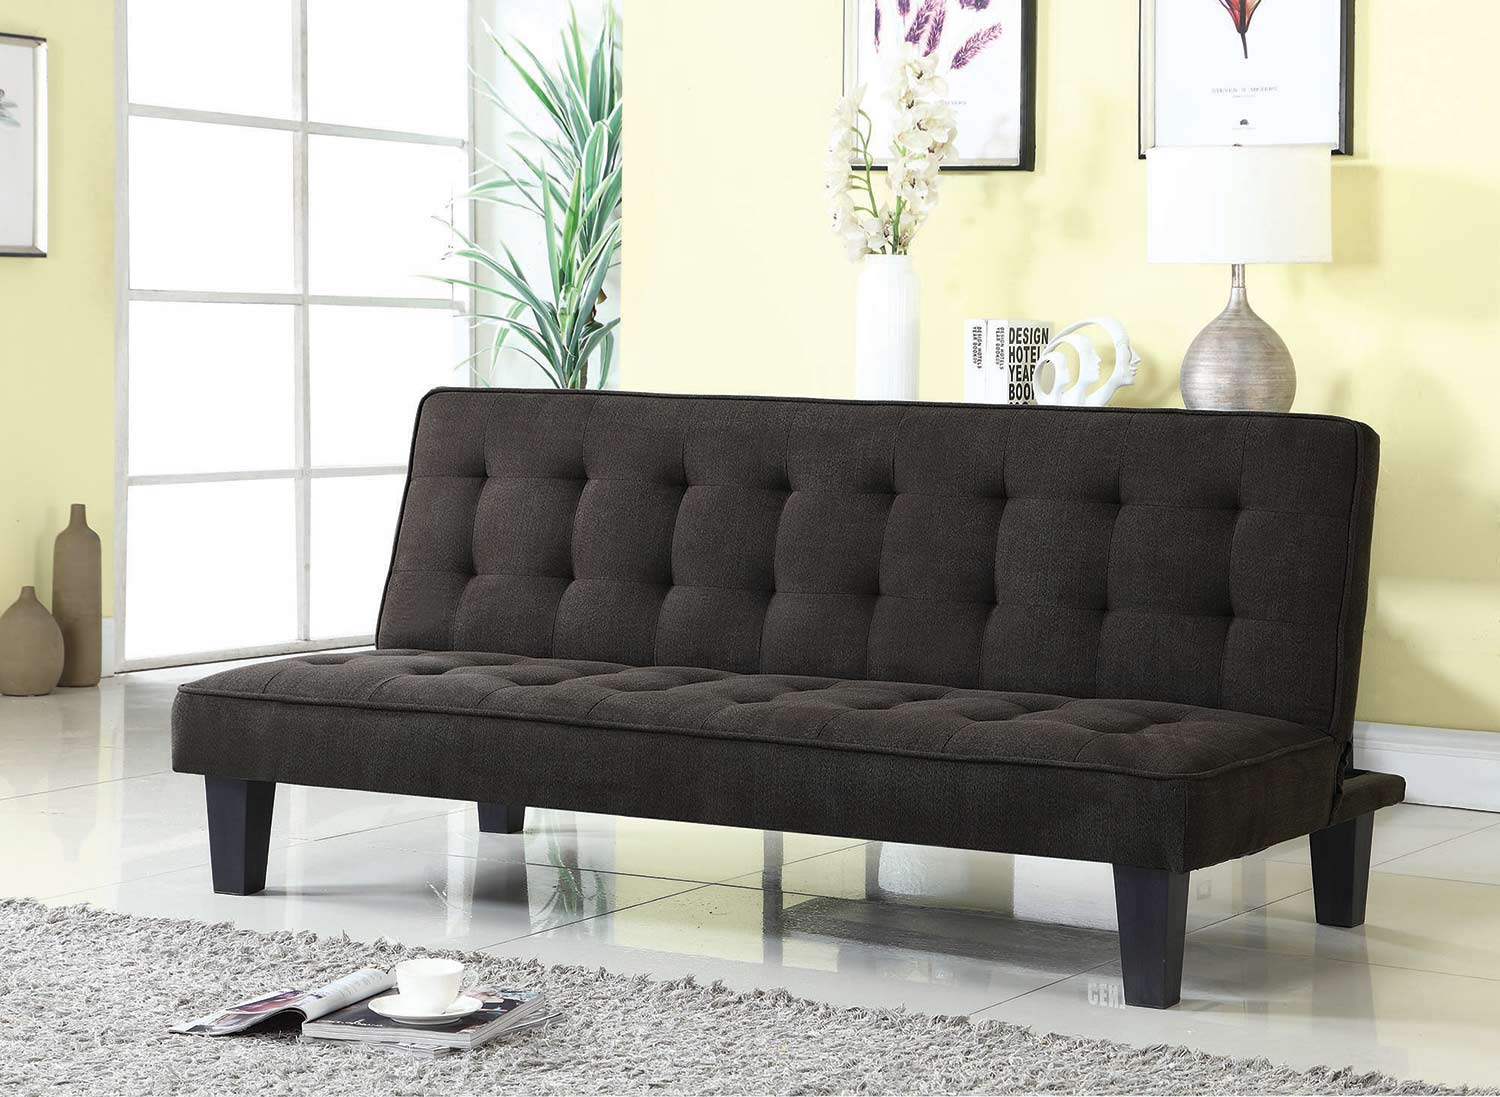 Coaster 503958 Sofa Bed Dark Brown